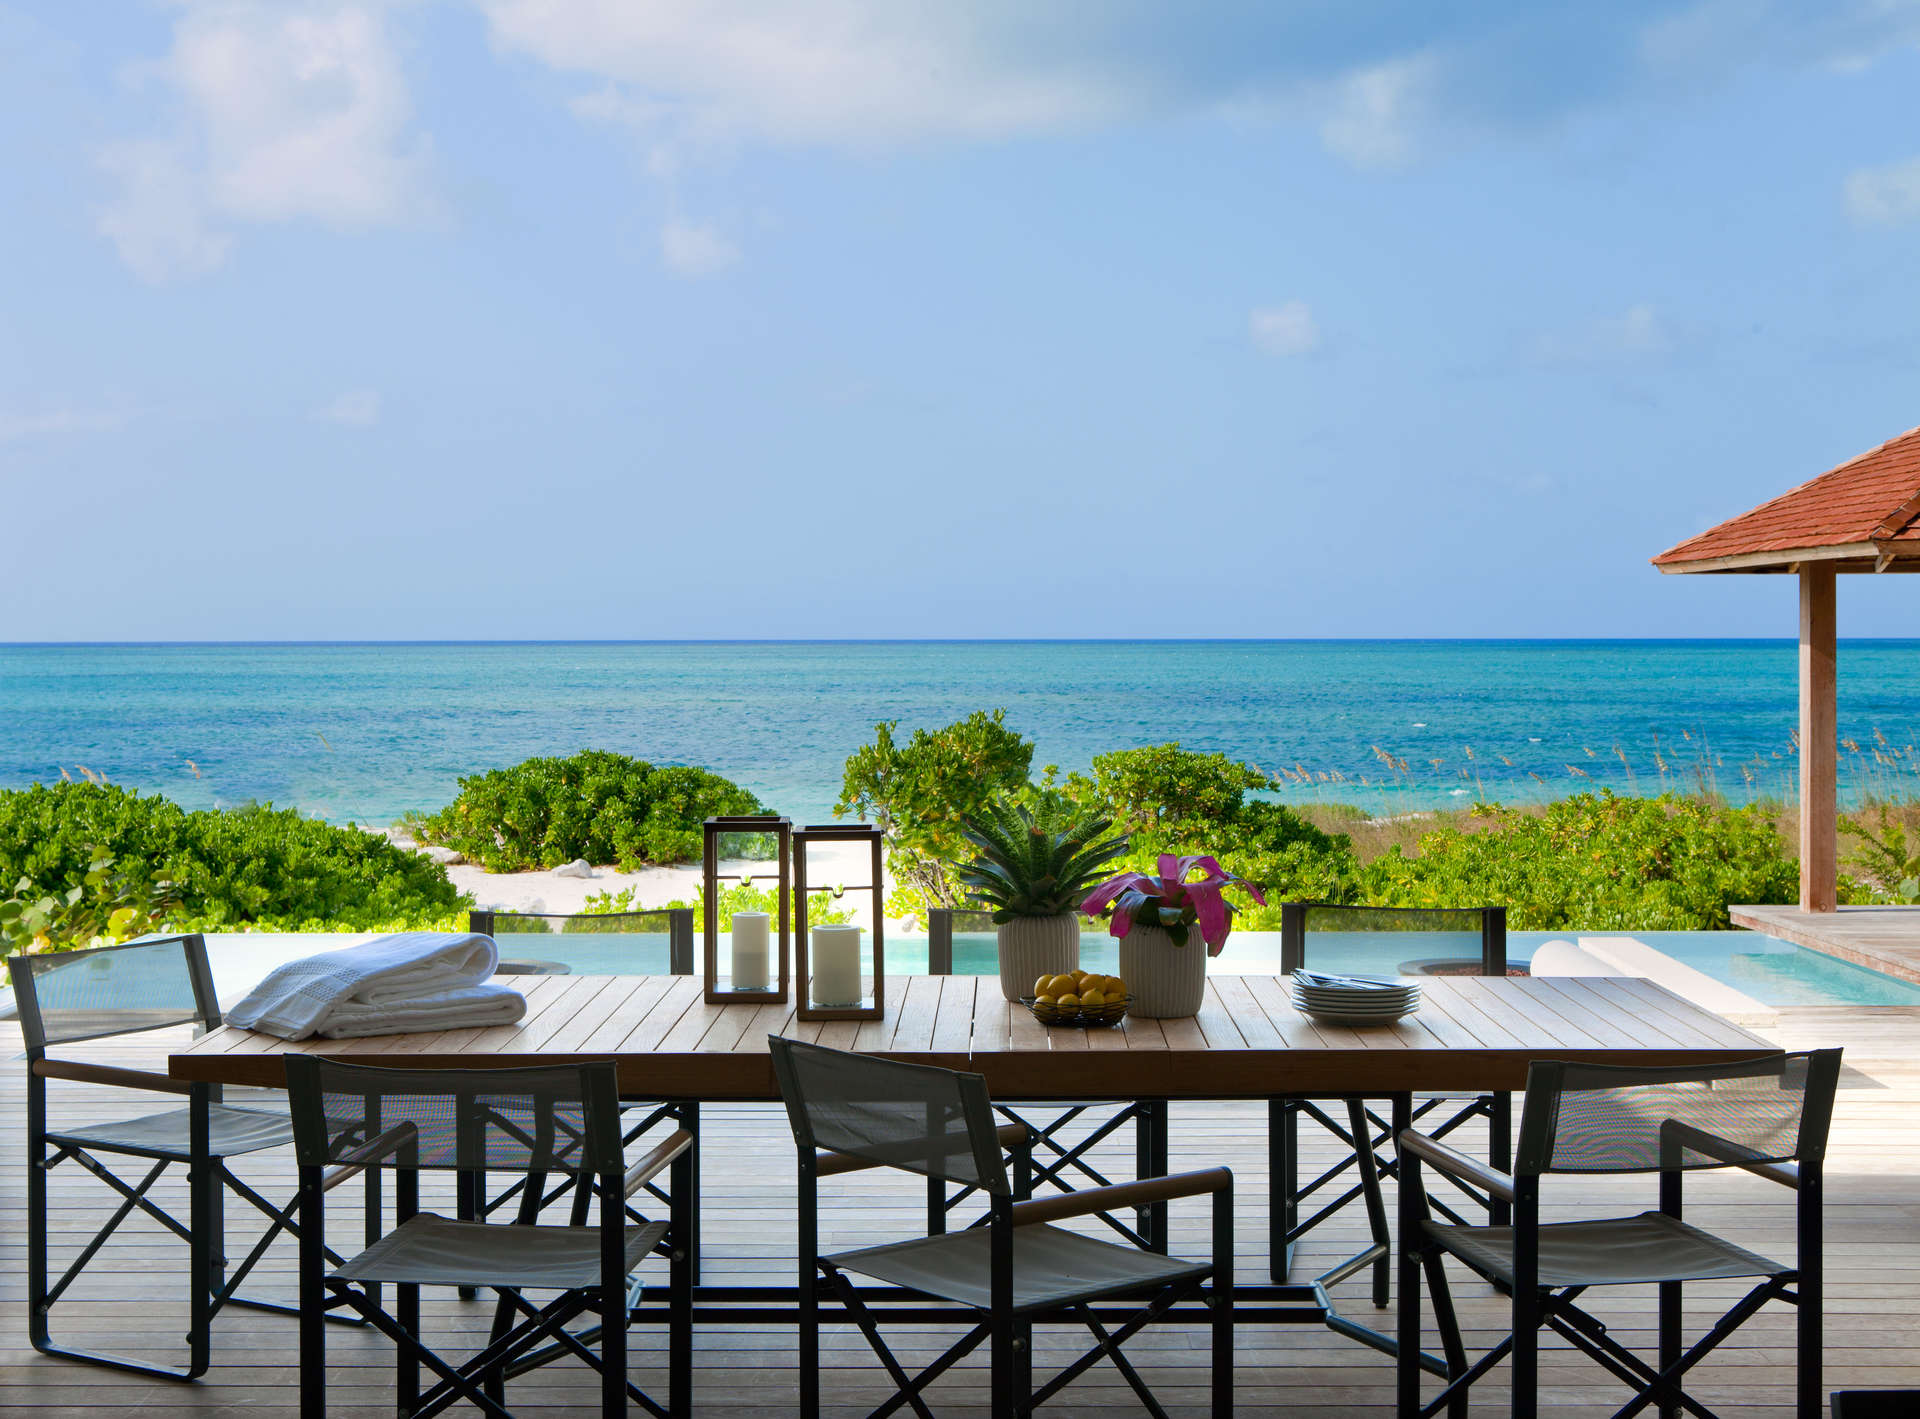 Luxury villa rentals caribbean - Turks and caicos - Providenciales - Grace bay club - The Residences | Graceful Living - Image 1/8